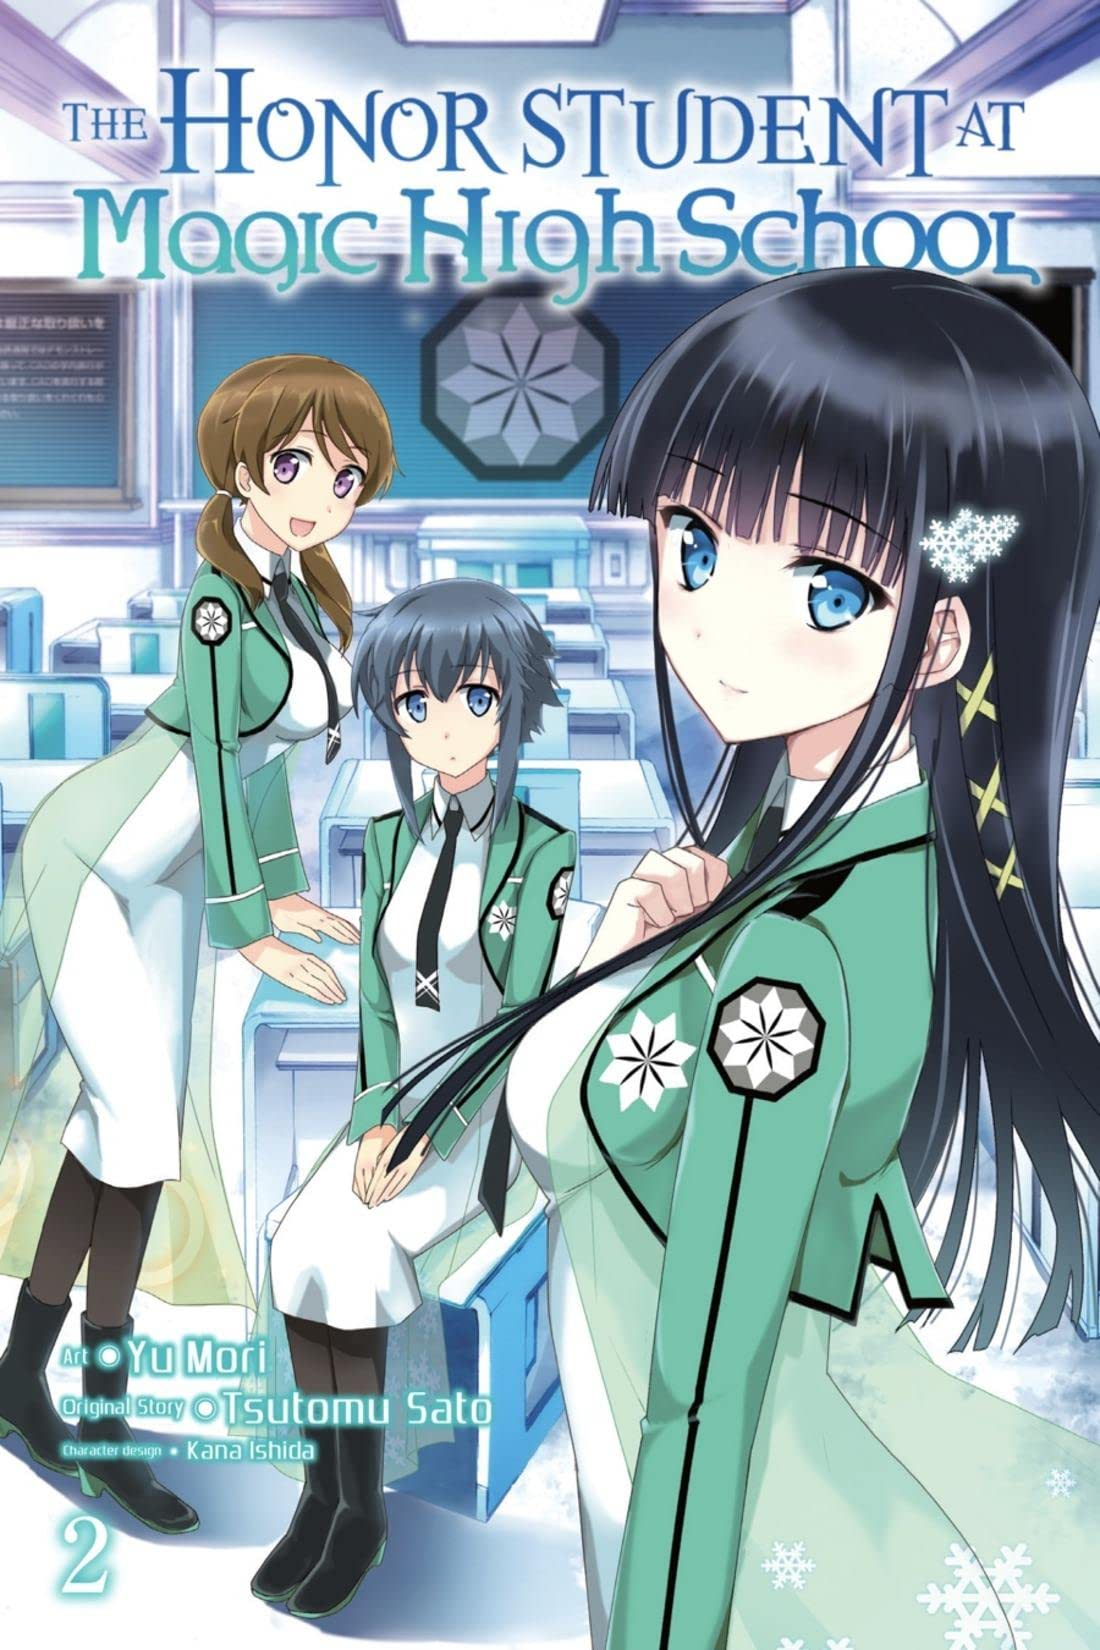 The Honor Student at Magic High School Vol. 2